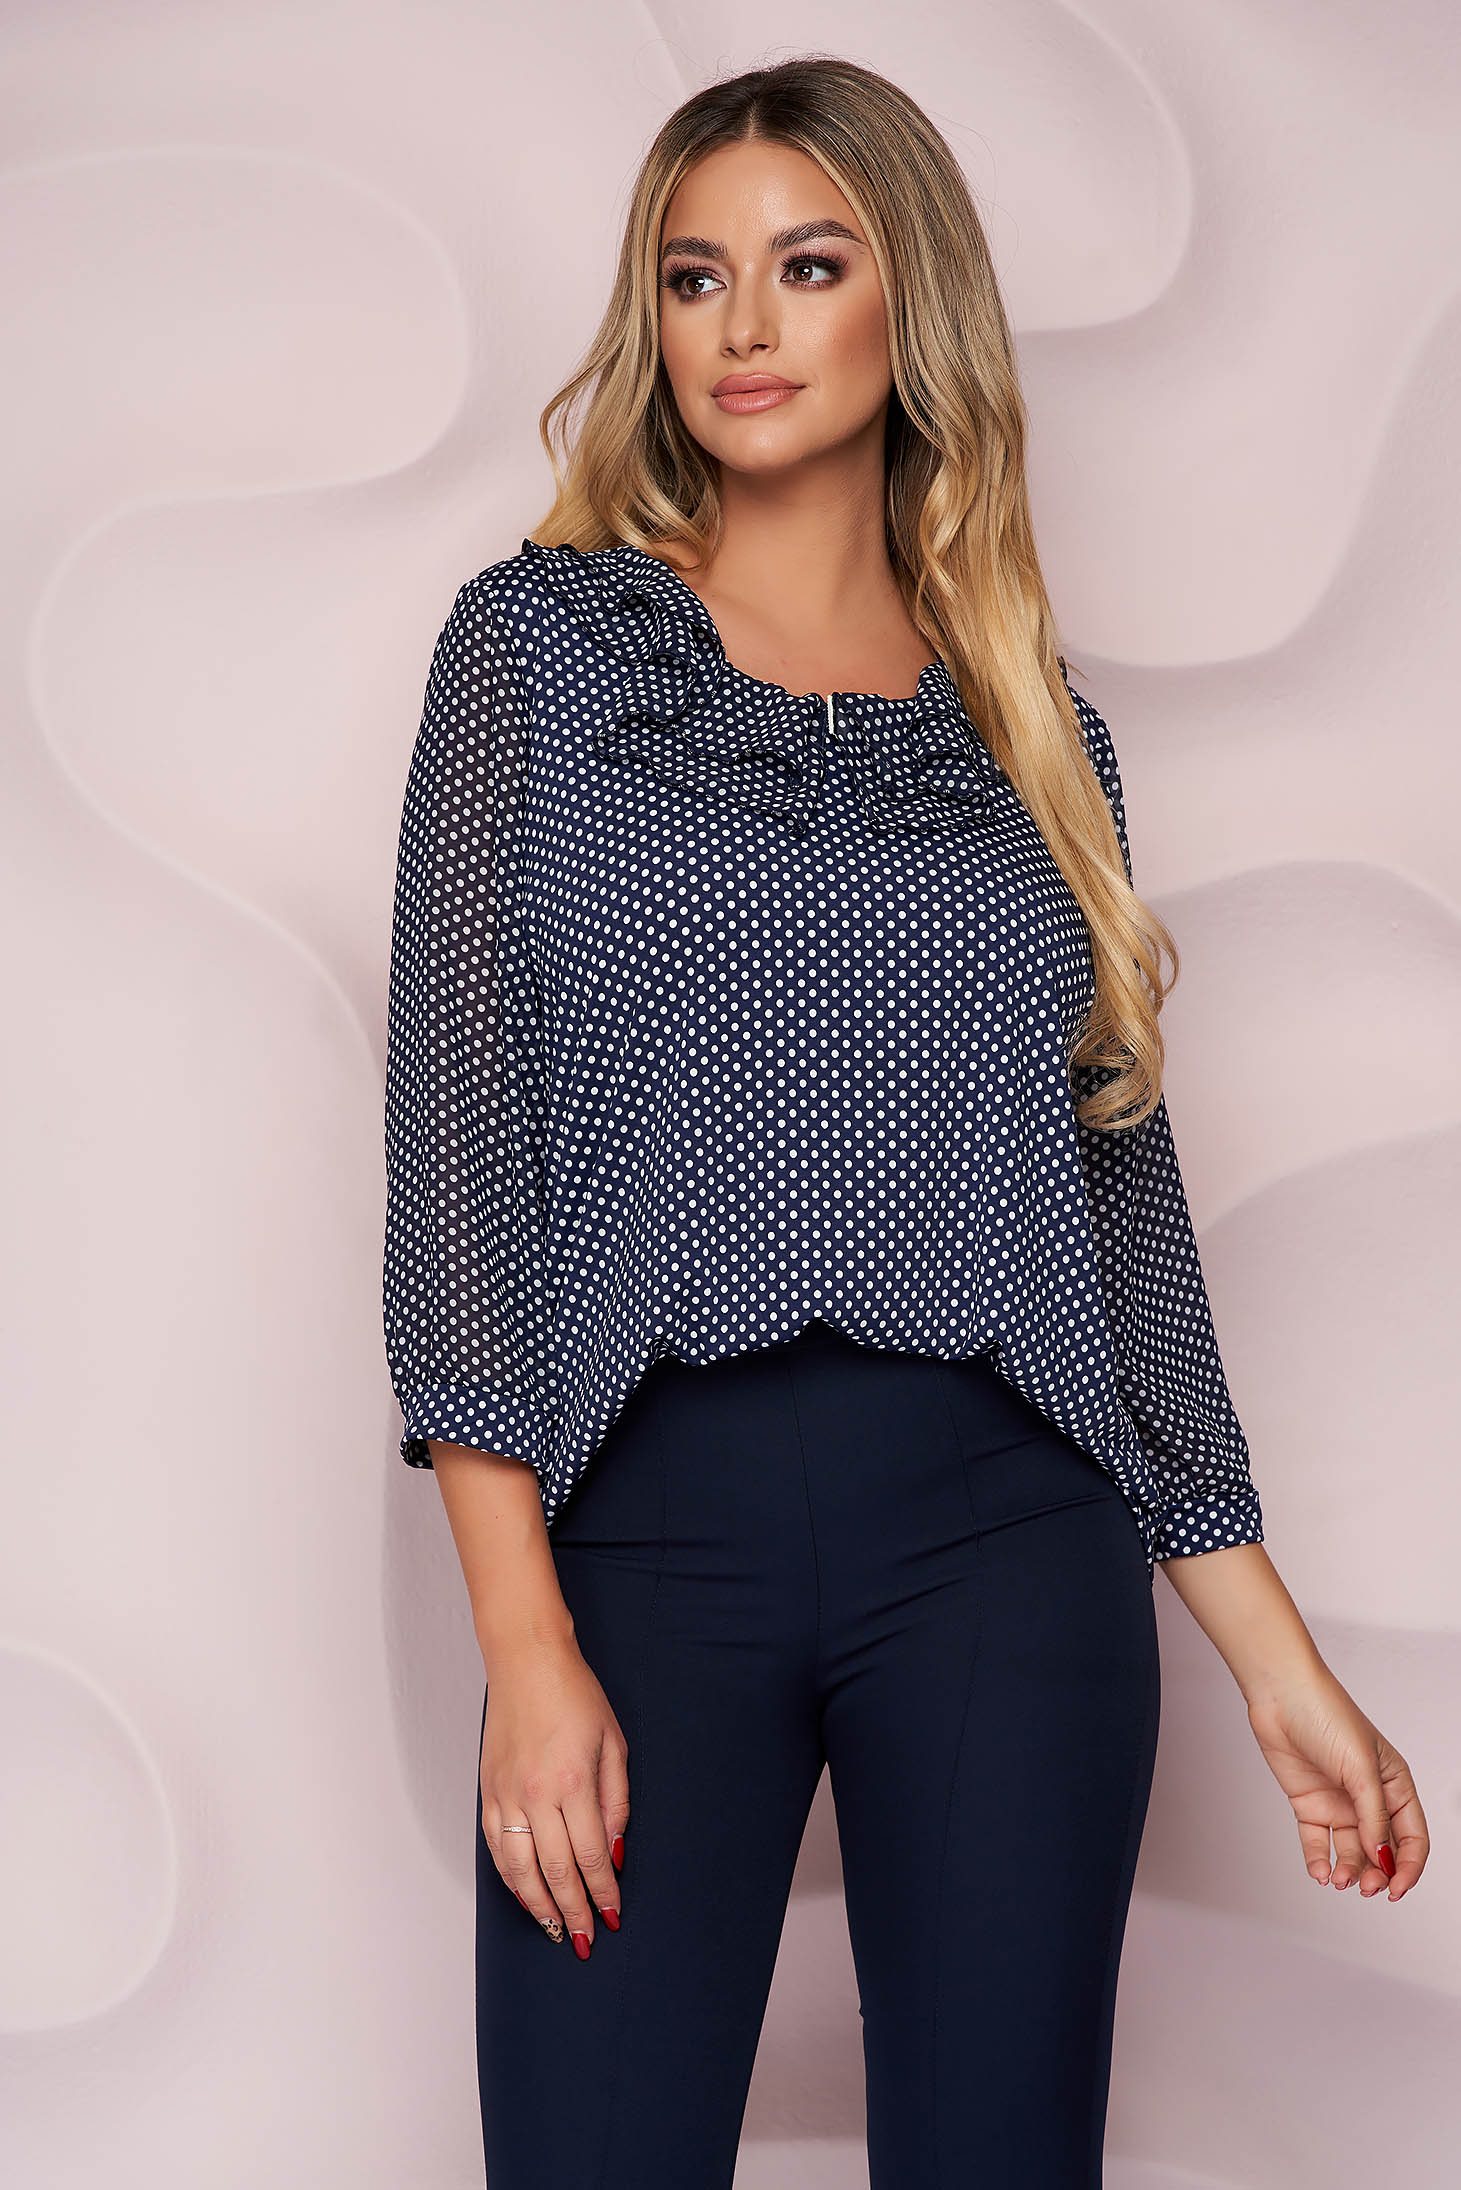 Women`s blouse thin fabric from veil fabric office loose fit ruffled collar from elastic fabric